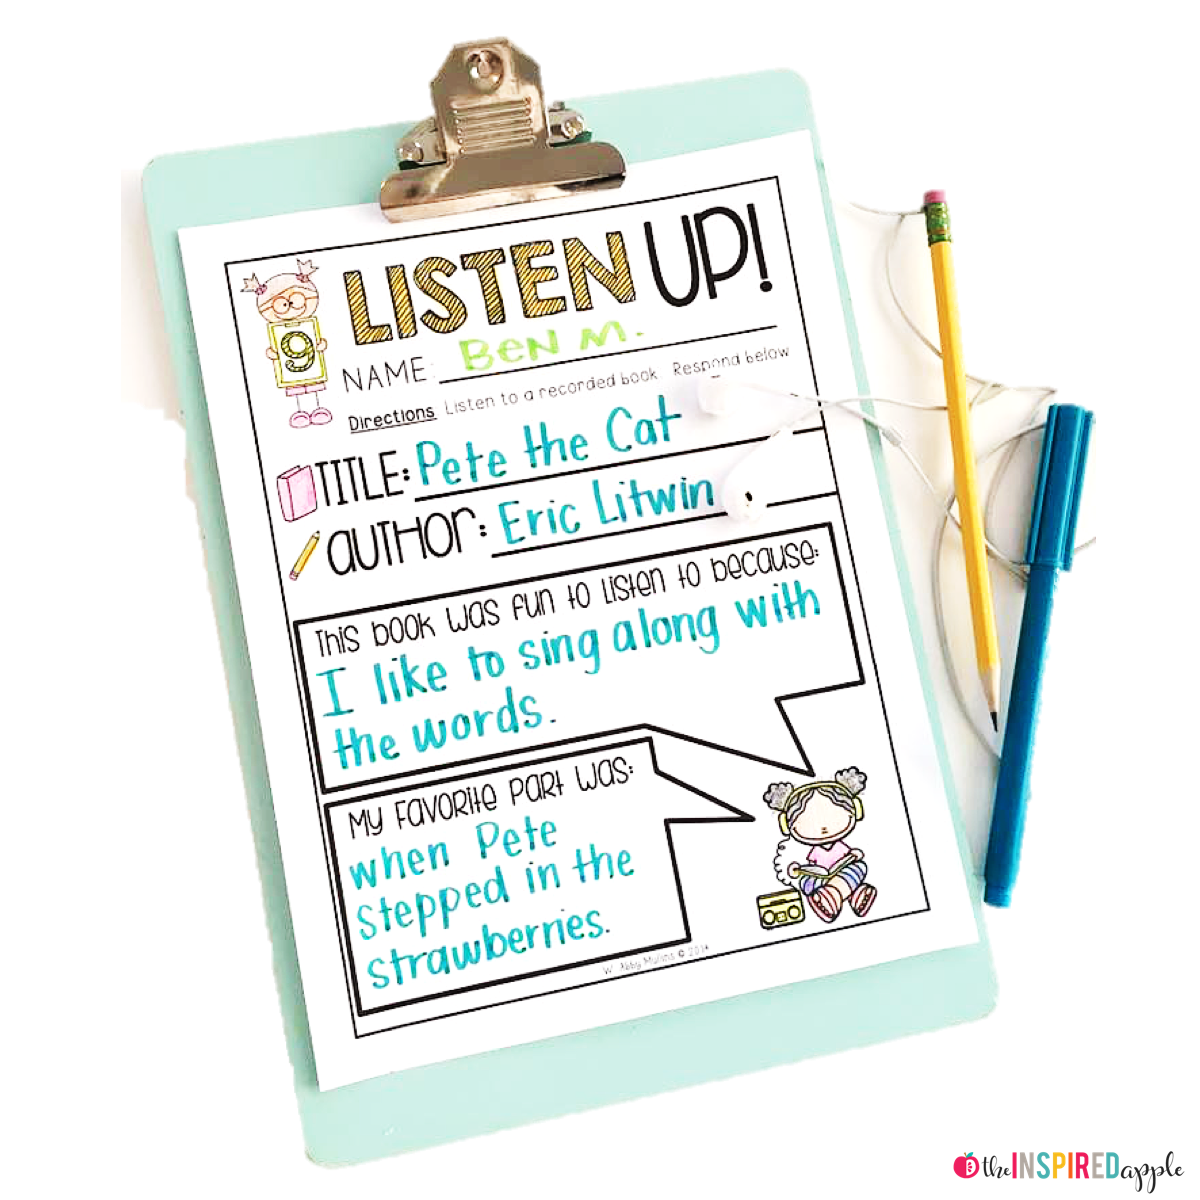 Teachers are BUSY people, which is why these no-prep literacy printables are great for centers, review, subs, and more! Simply print, add a clipboard, and use what you already have on hand - word walls, spelling lists, environmental print, books, listening centers, etc. - in your classroom to engage and challenge your kindergarten, first grade, and second grade students! Fun, engaging, and EASY!